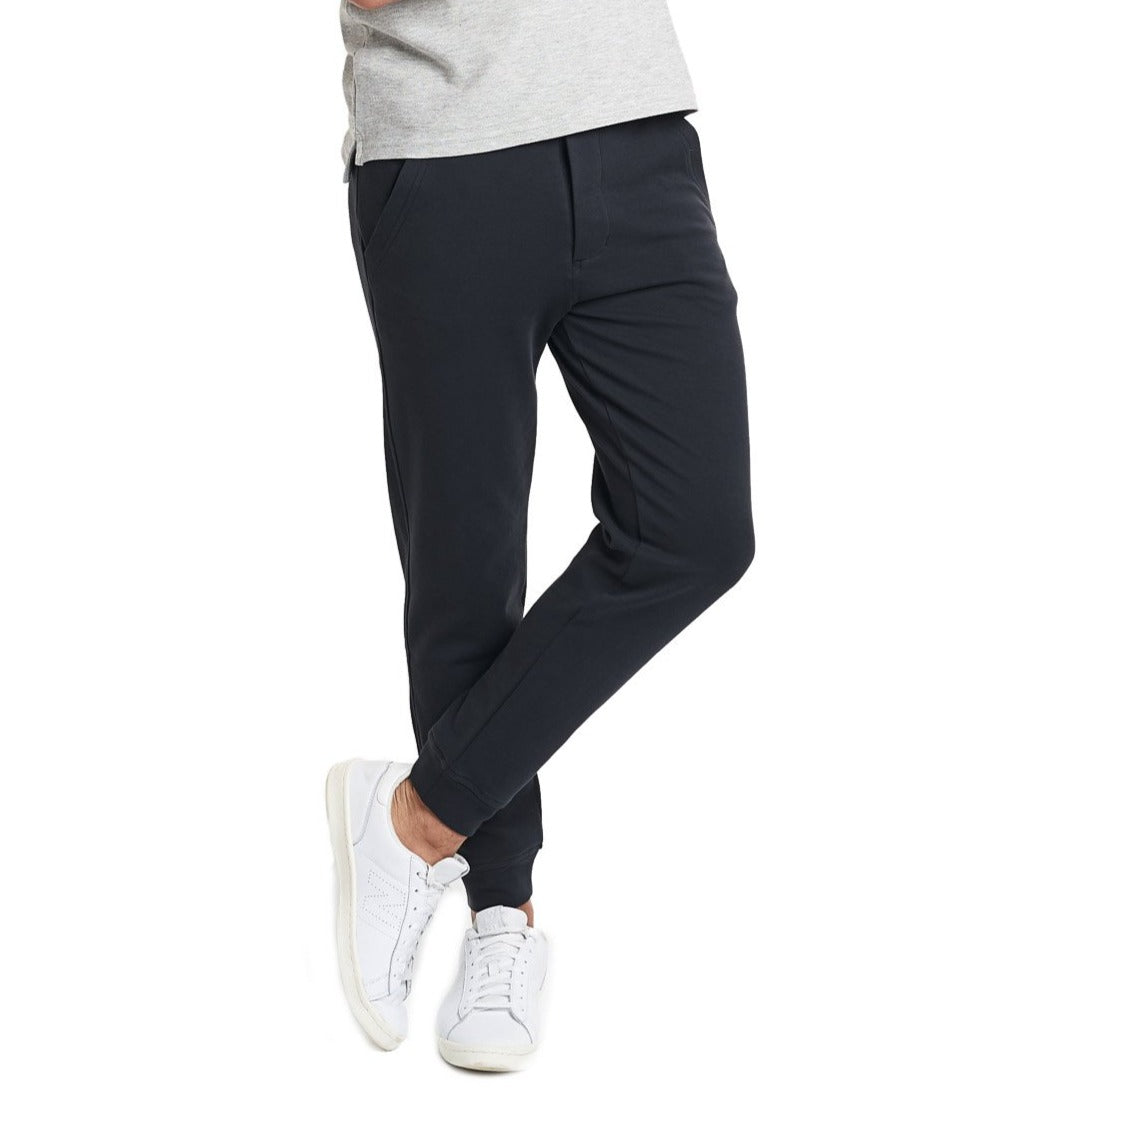 b602802a8587 Black Sweatpants for Short Men (27